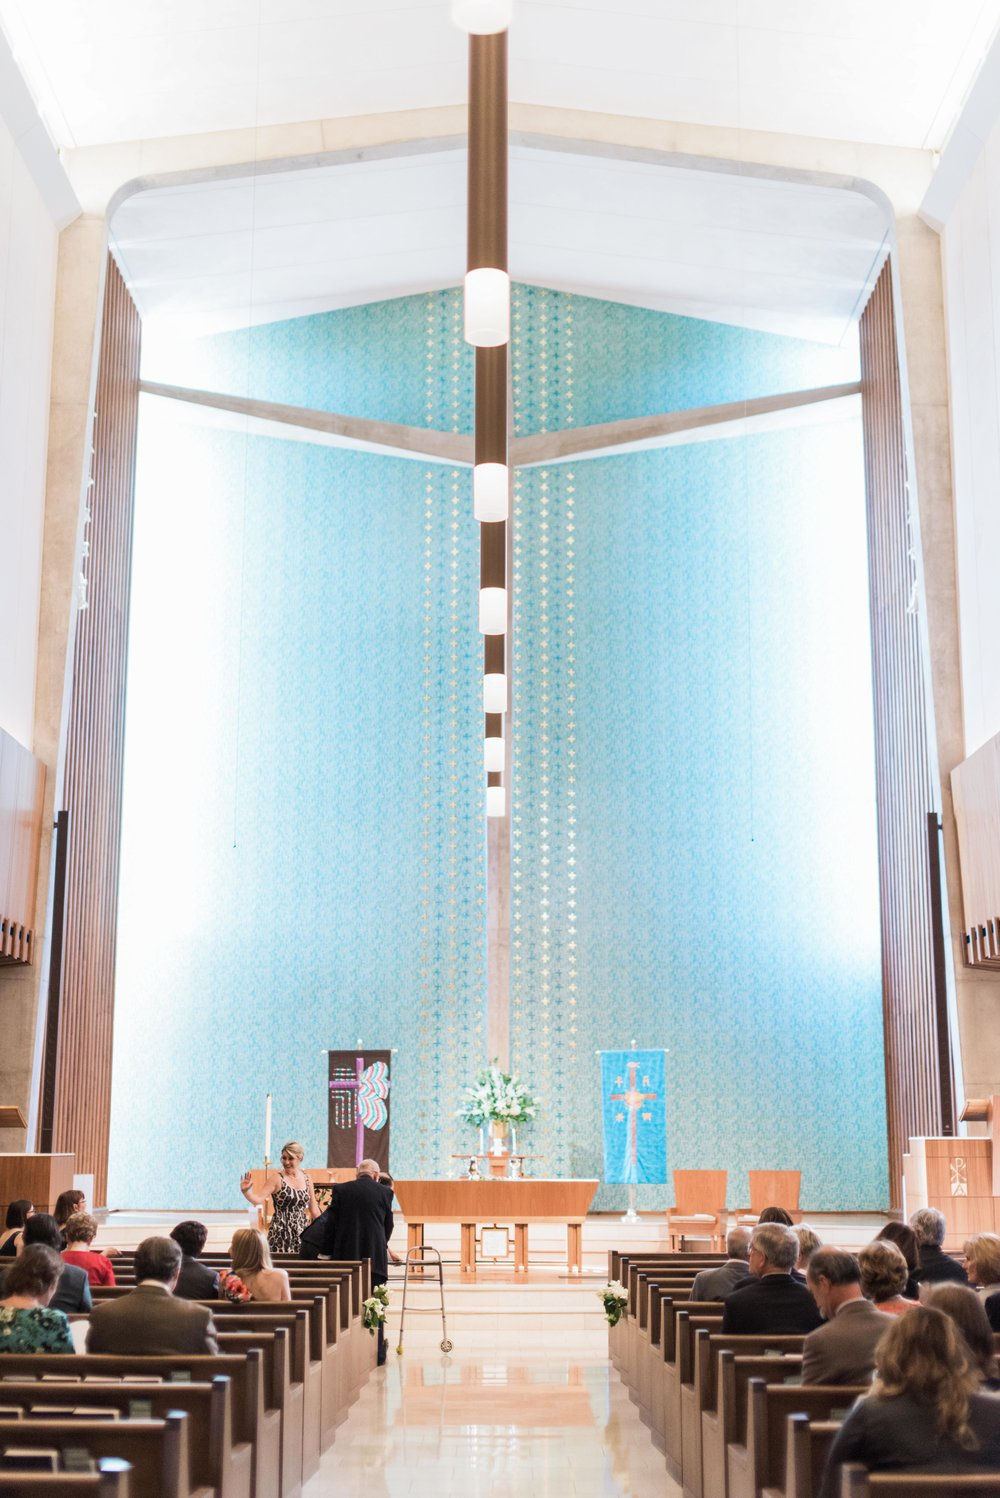 St.-Philip-Presbyterian-Church-Houston-Wedding-Ceremony-The-Junior-League-Of-Houston-Reception-Dana-Fernandez-Photography-Fine-Art-Film-22.jpg